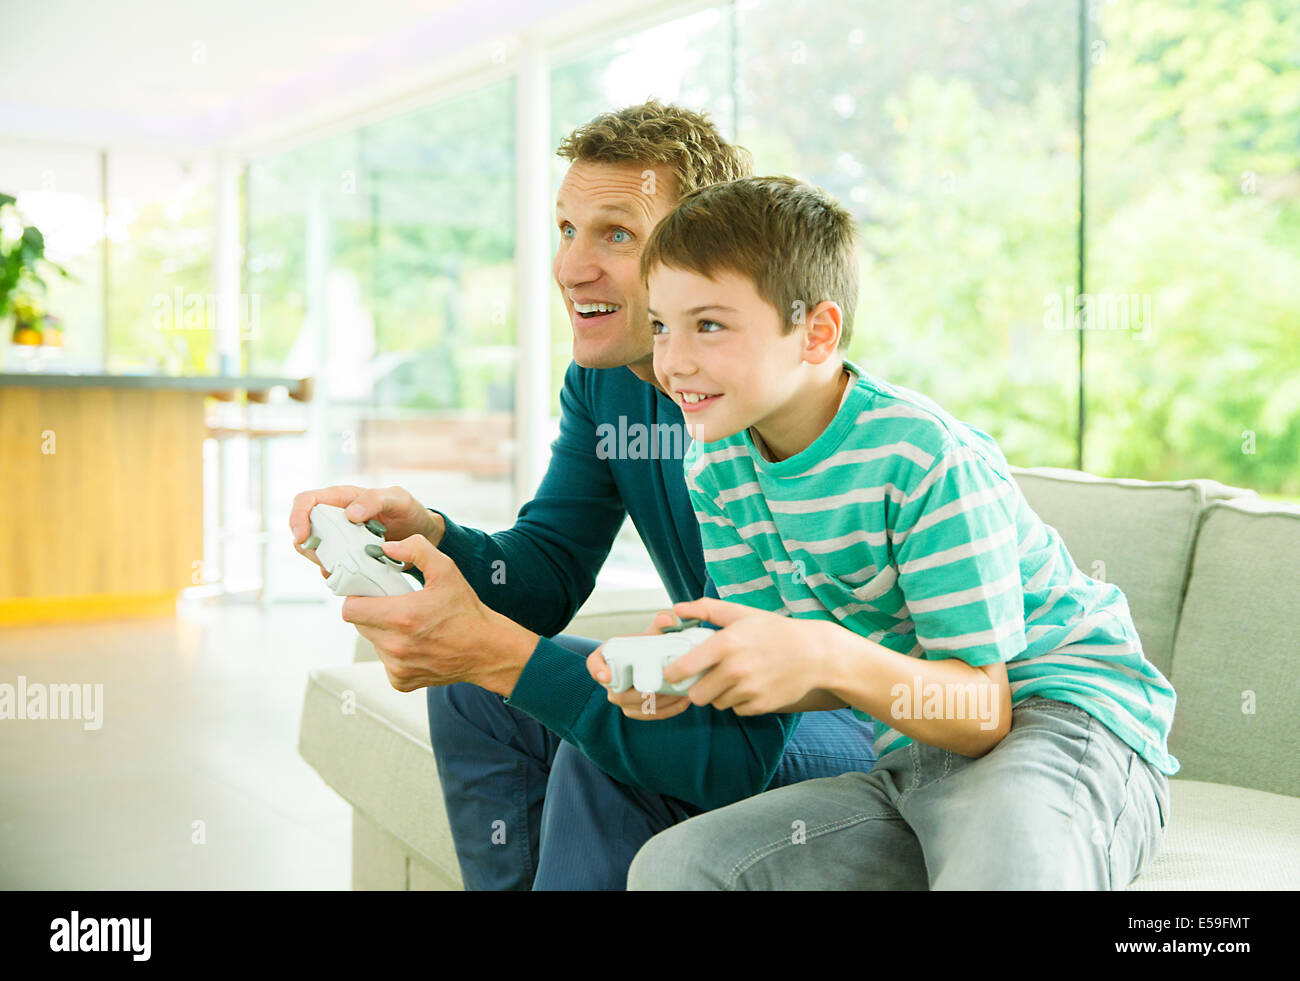 Father and son playing video games in living room Stock Photo